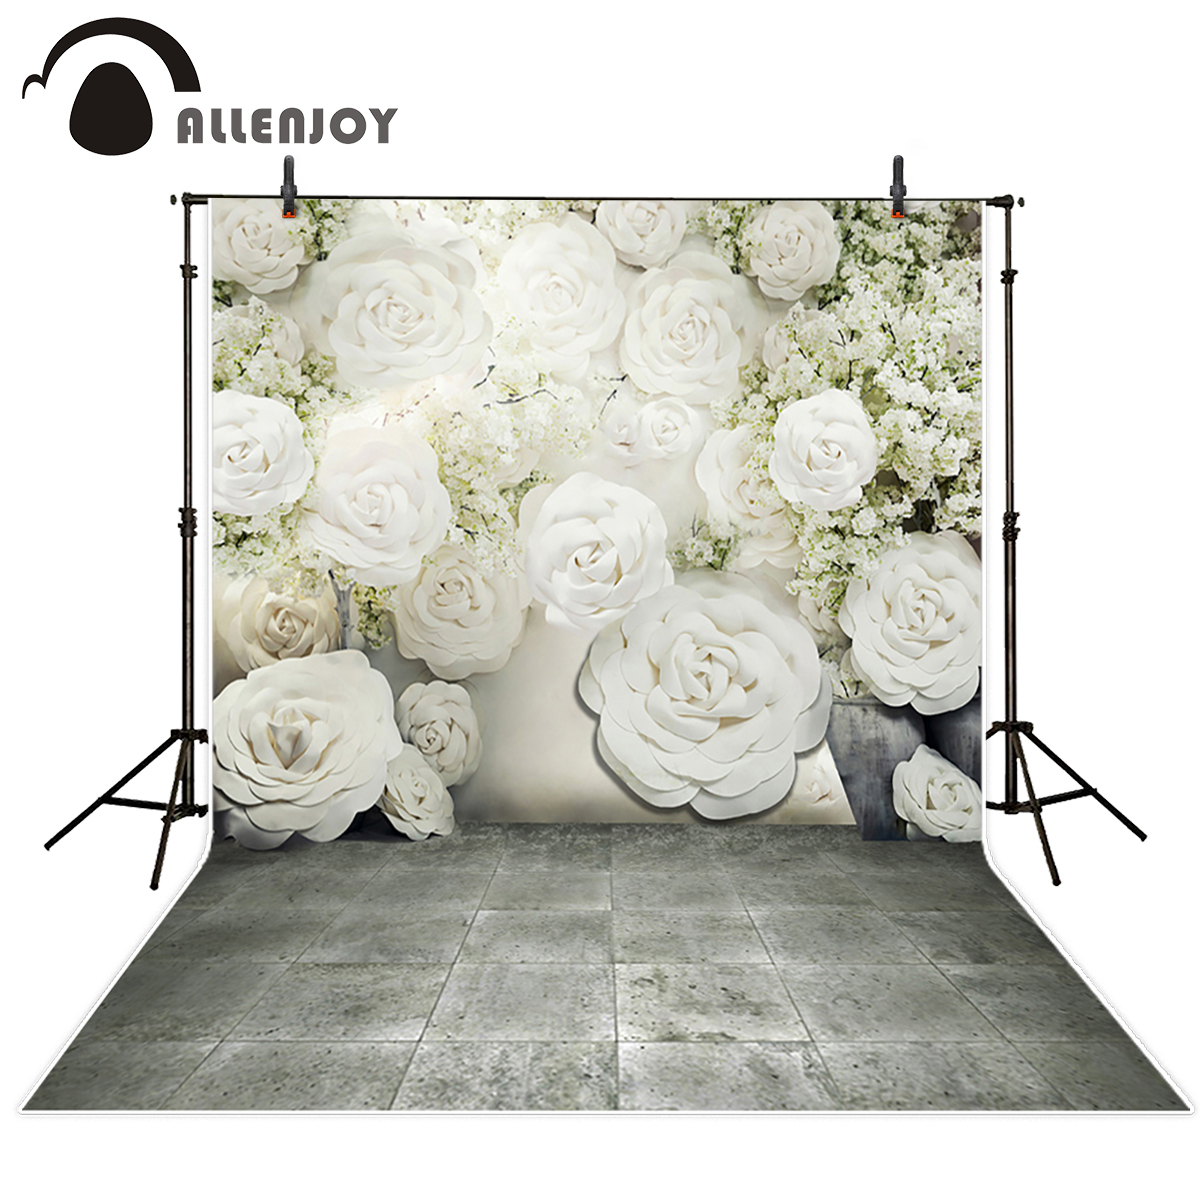 Allenjoy photography backdrops White Flowers Wedding backdrop Love Brick floor Background vinyl backdrops for photo studio allenjoy photography backdrops valentine s day love colourful heart wedding background for studio photo backdrop vinyl